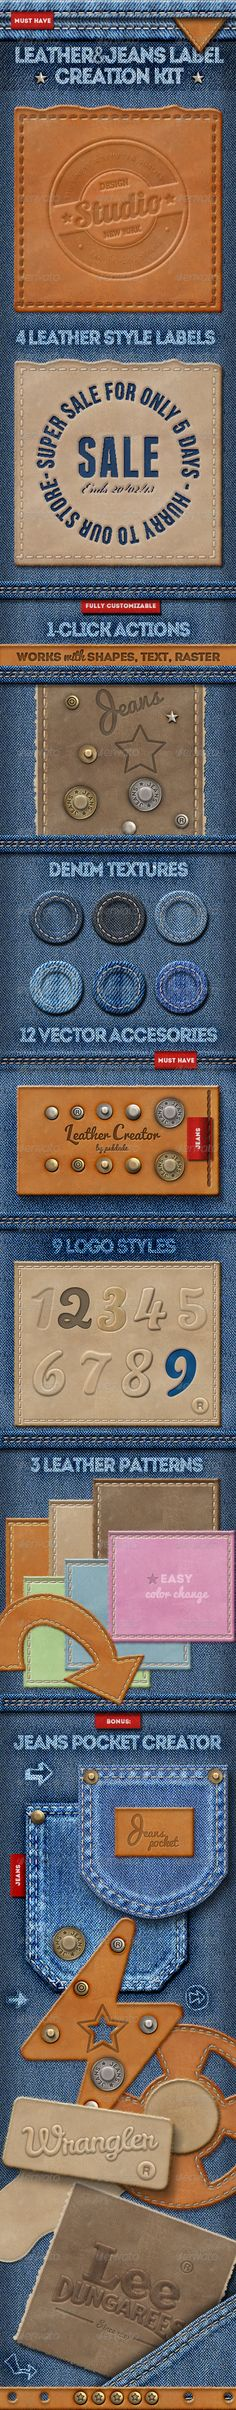 Leather Jeans Label Photoshop Creator